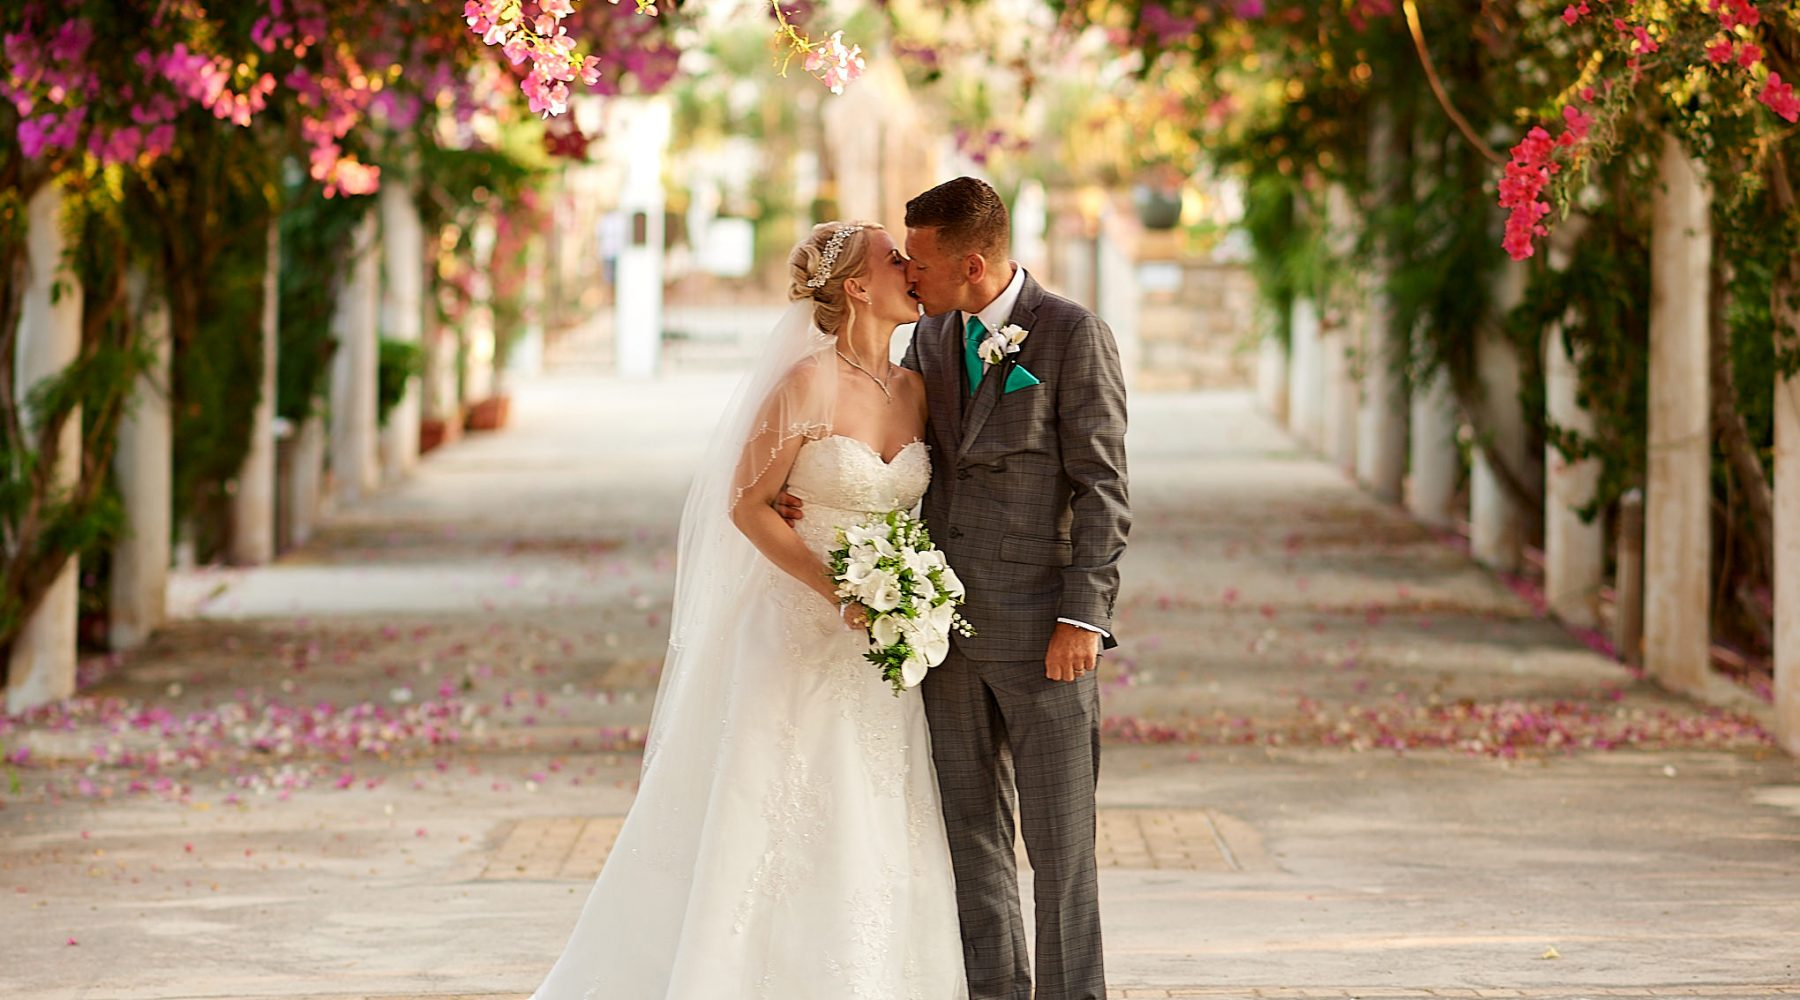 The best time of the year to get married in Cyprus